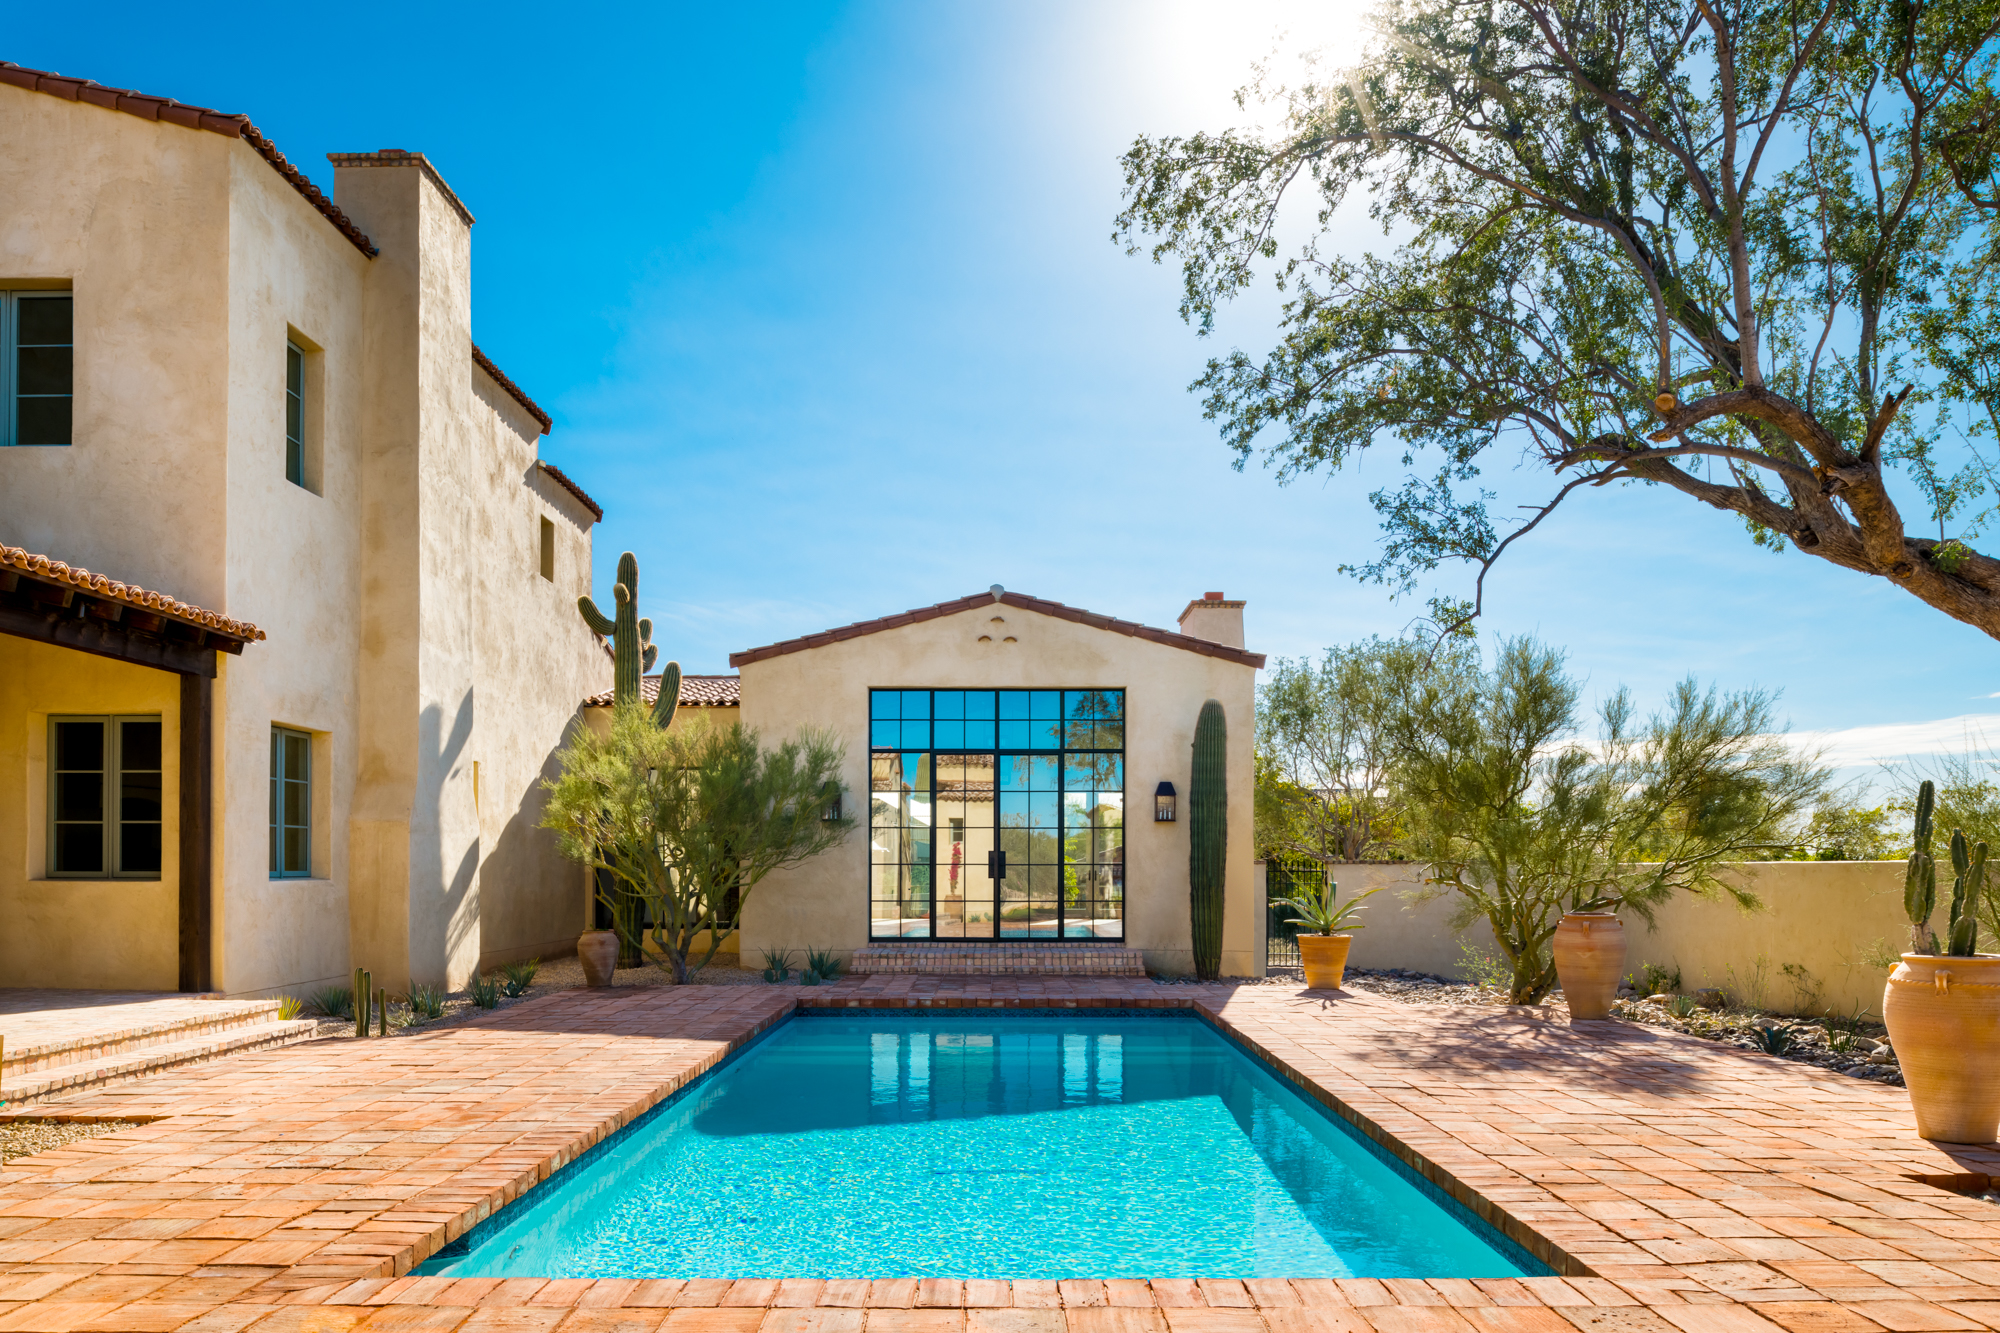 Silverleaf Home_Architecture_An Pham Photography_A853086.jpg